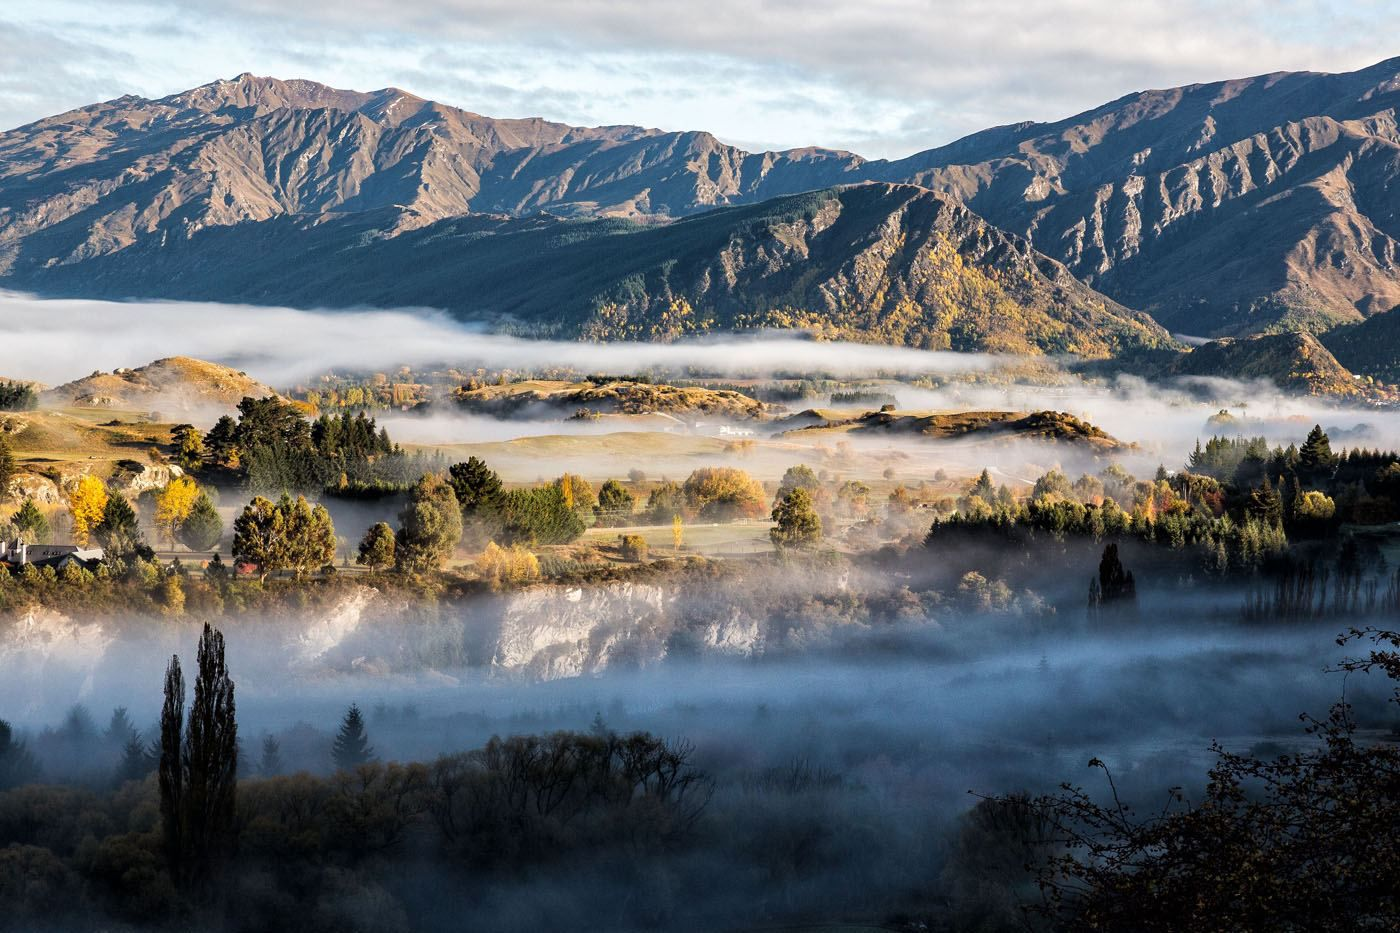 New Zealand in the mist